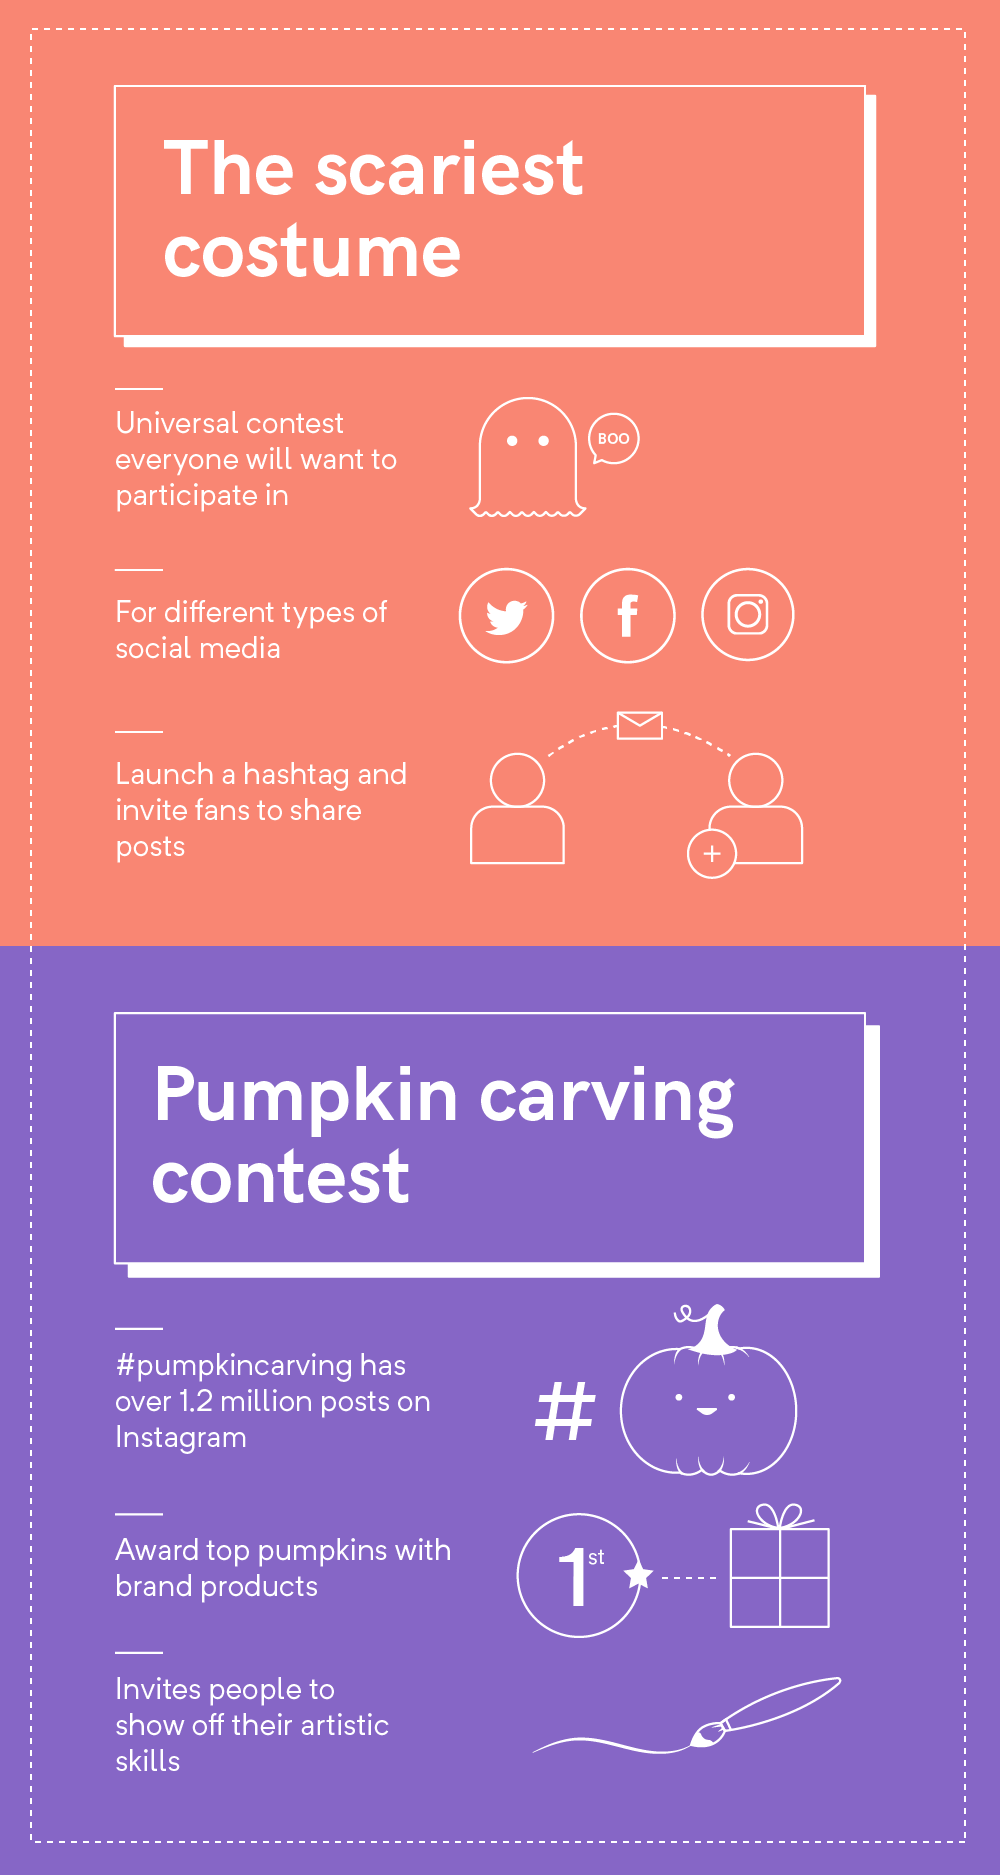 Halloween Contest Ideas For Work.Halloween Contest Ideas That Will Help You Boost Audience Engagement Promosimple